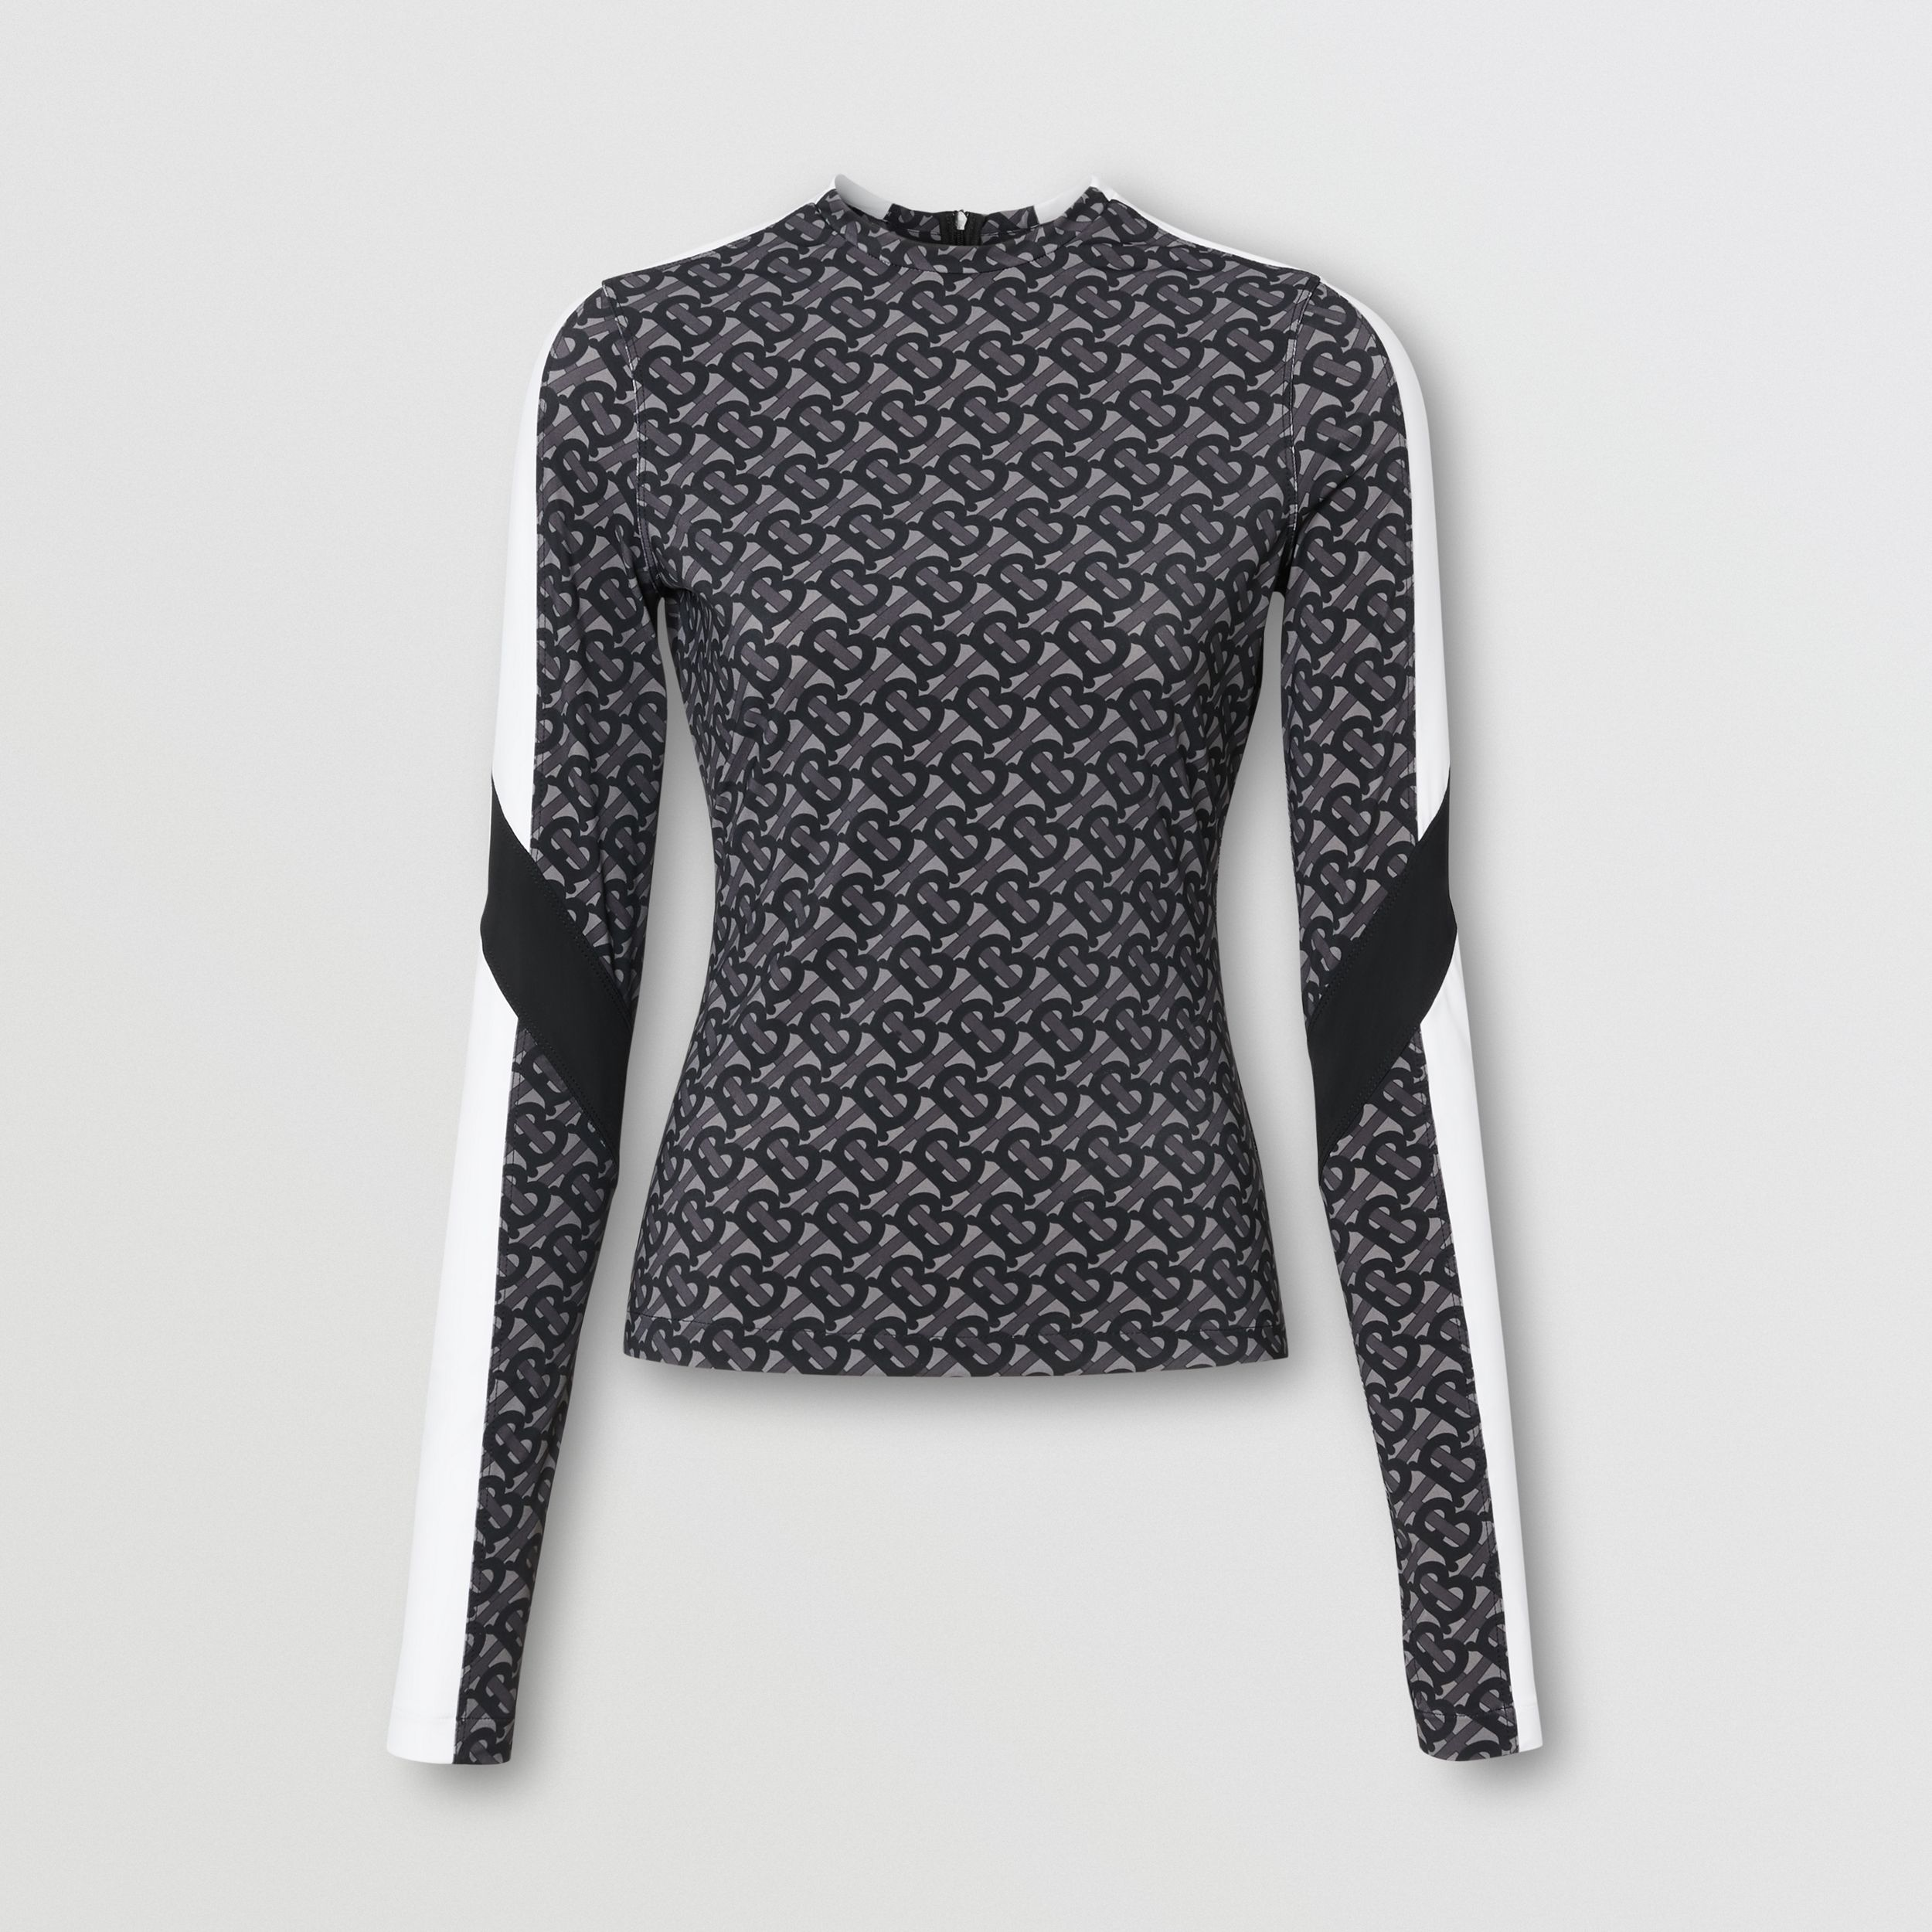 Colour Block Monogram Print Stretch Jersey Top in Graphite - Women | Burberry - 4